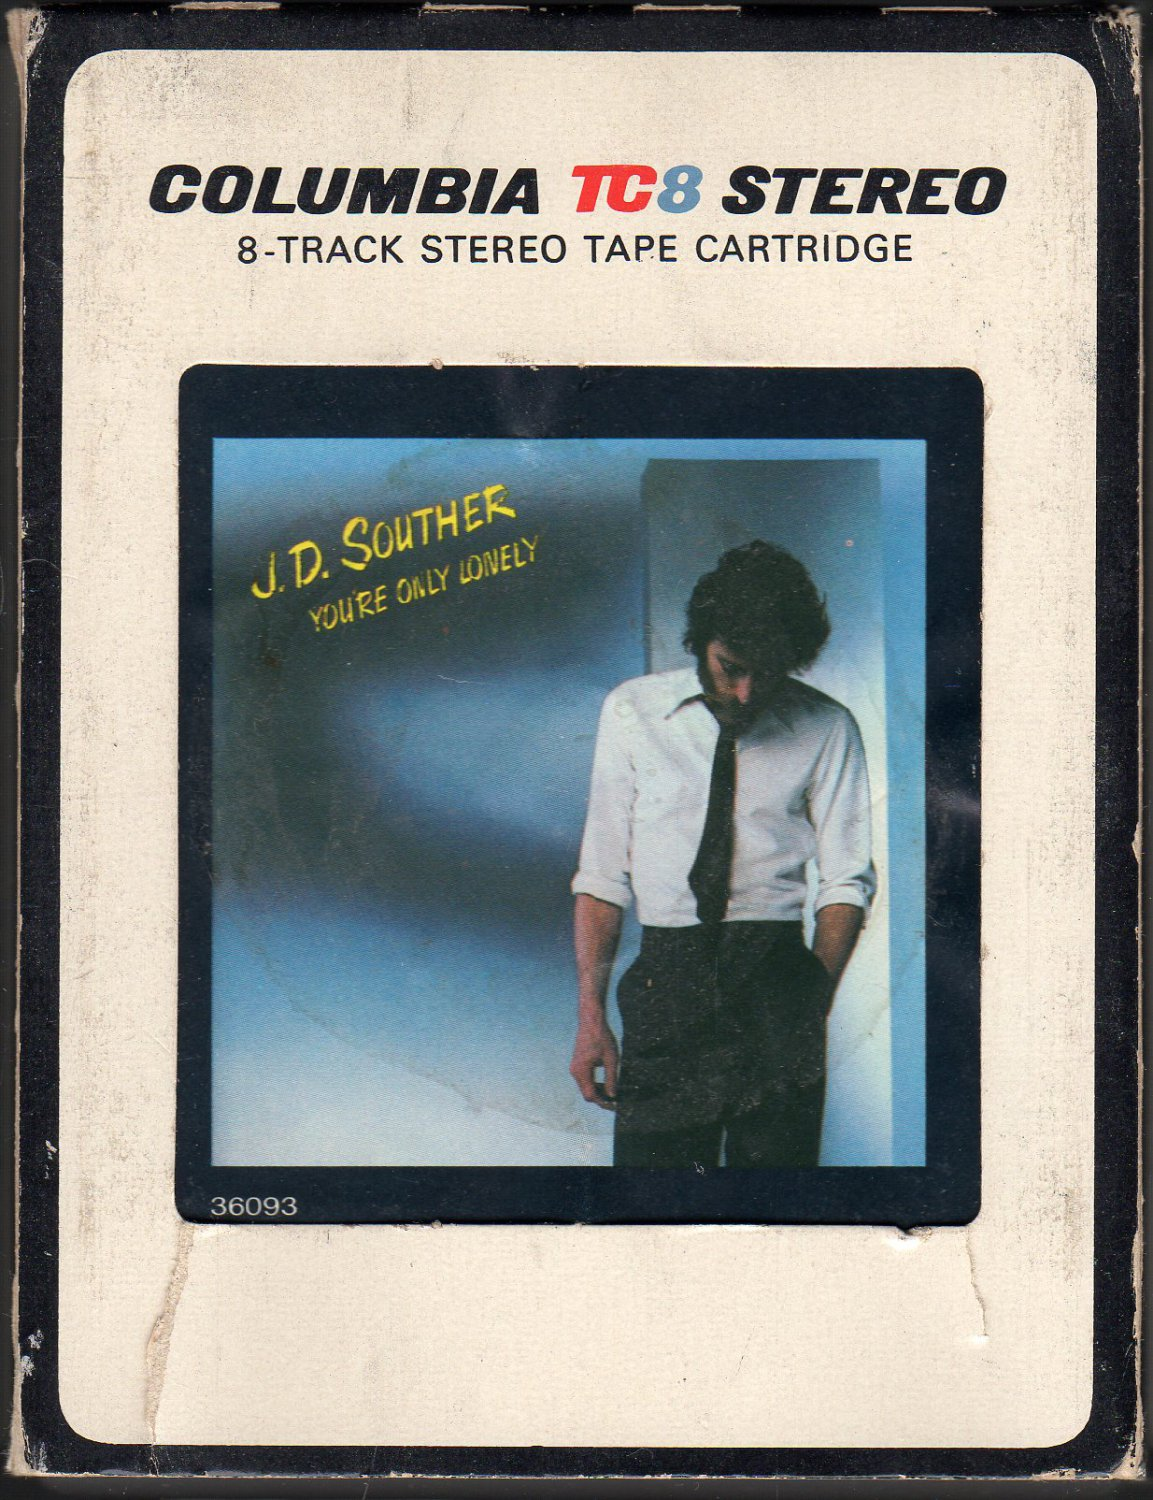 J.D. Souther - You're Only Lonely 1979 CBS A16 8-track tape